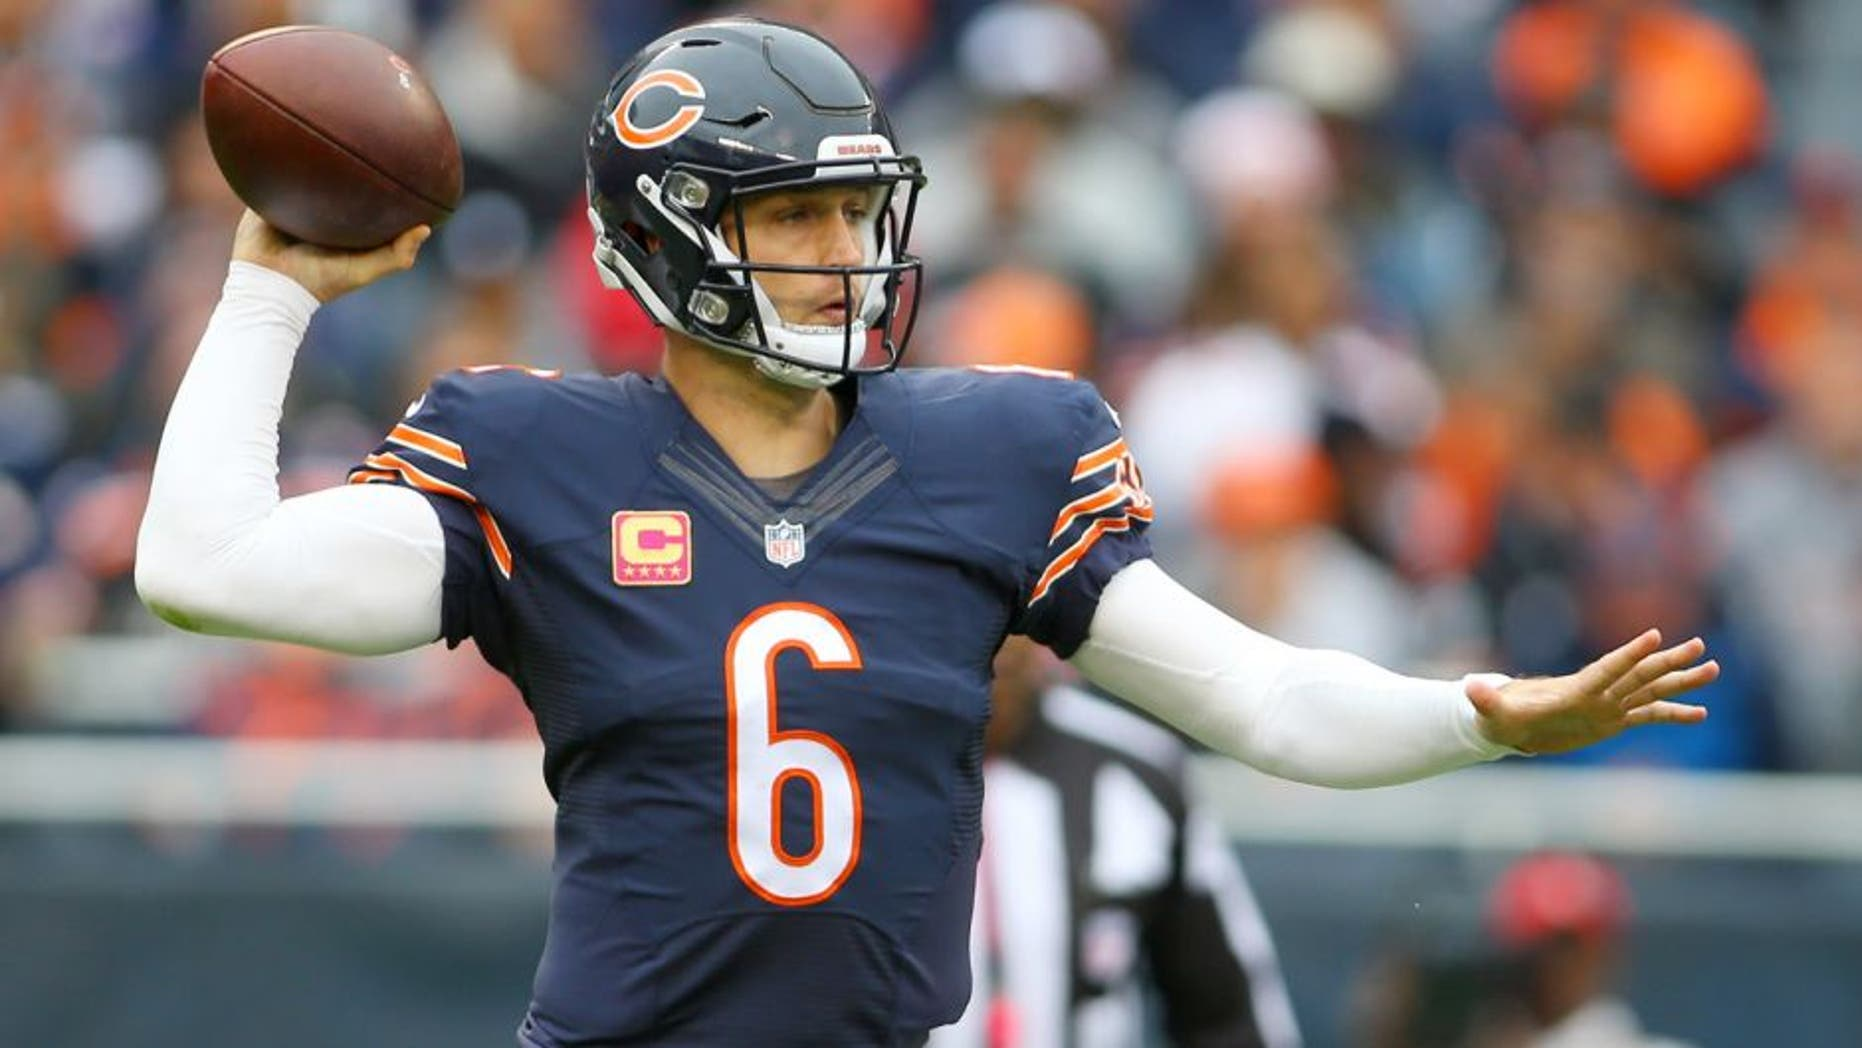 Oct 4, 2015; Chicago, IL, USA; Chicago Bears quarterback Jay Cutler (6) throws a pass against the Oakland Raiders during the second quarter at Soldier Field. Mandatory Credit: Jerry Lai-USA TODAY Sports